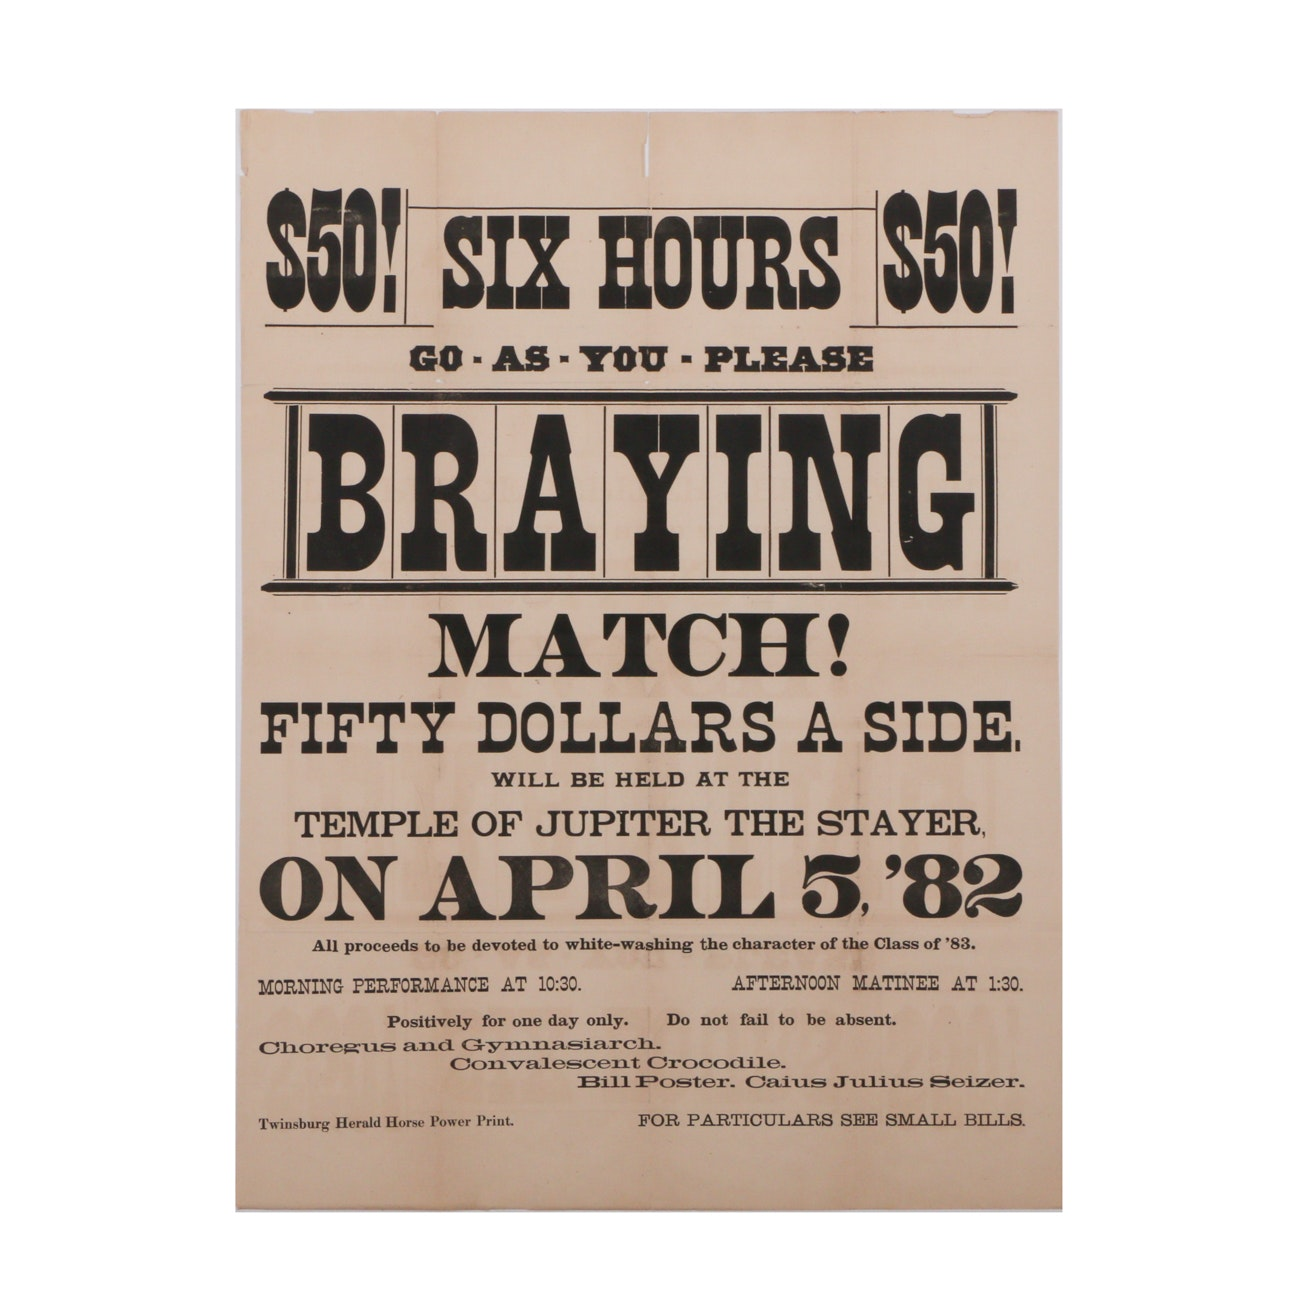 Original 1882 Lithographic Braying Match Poster